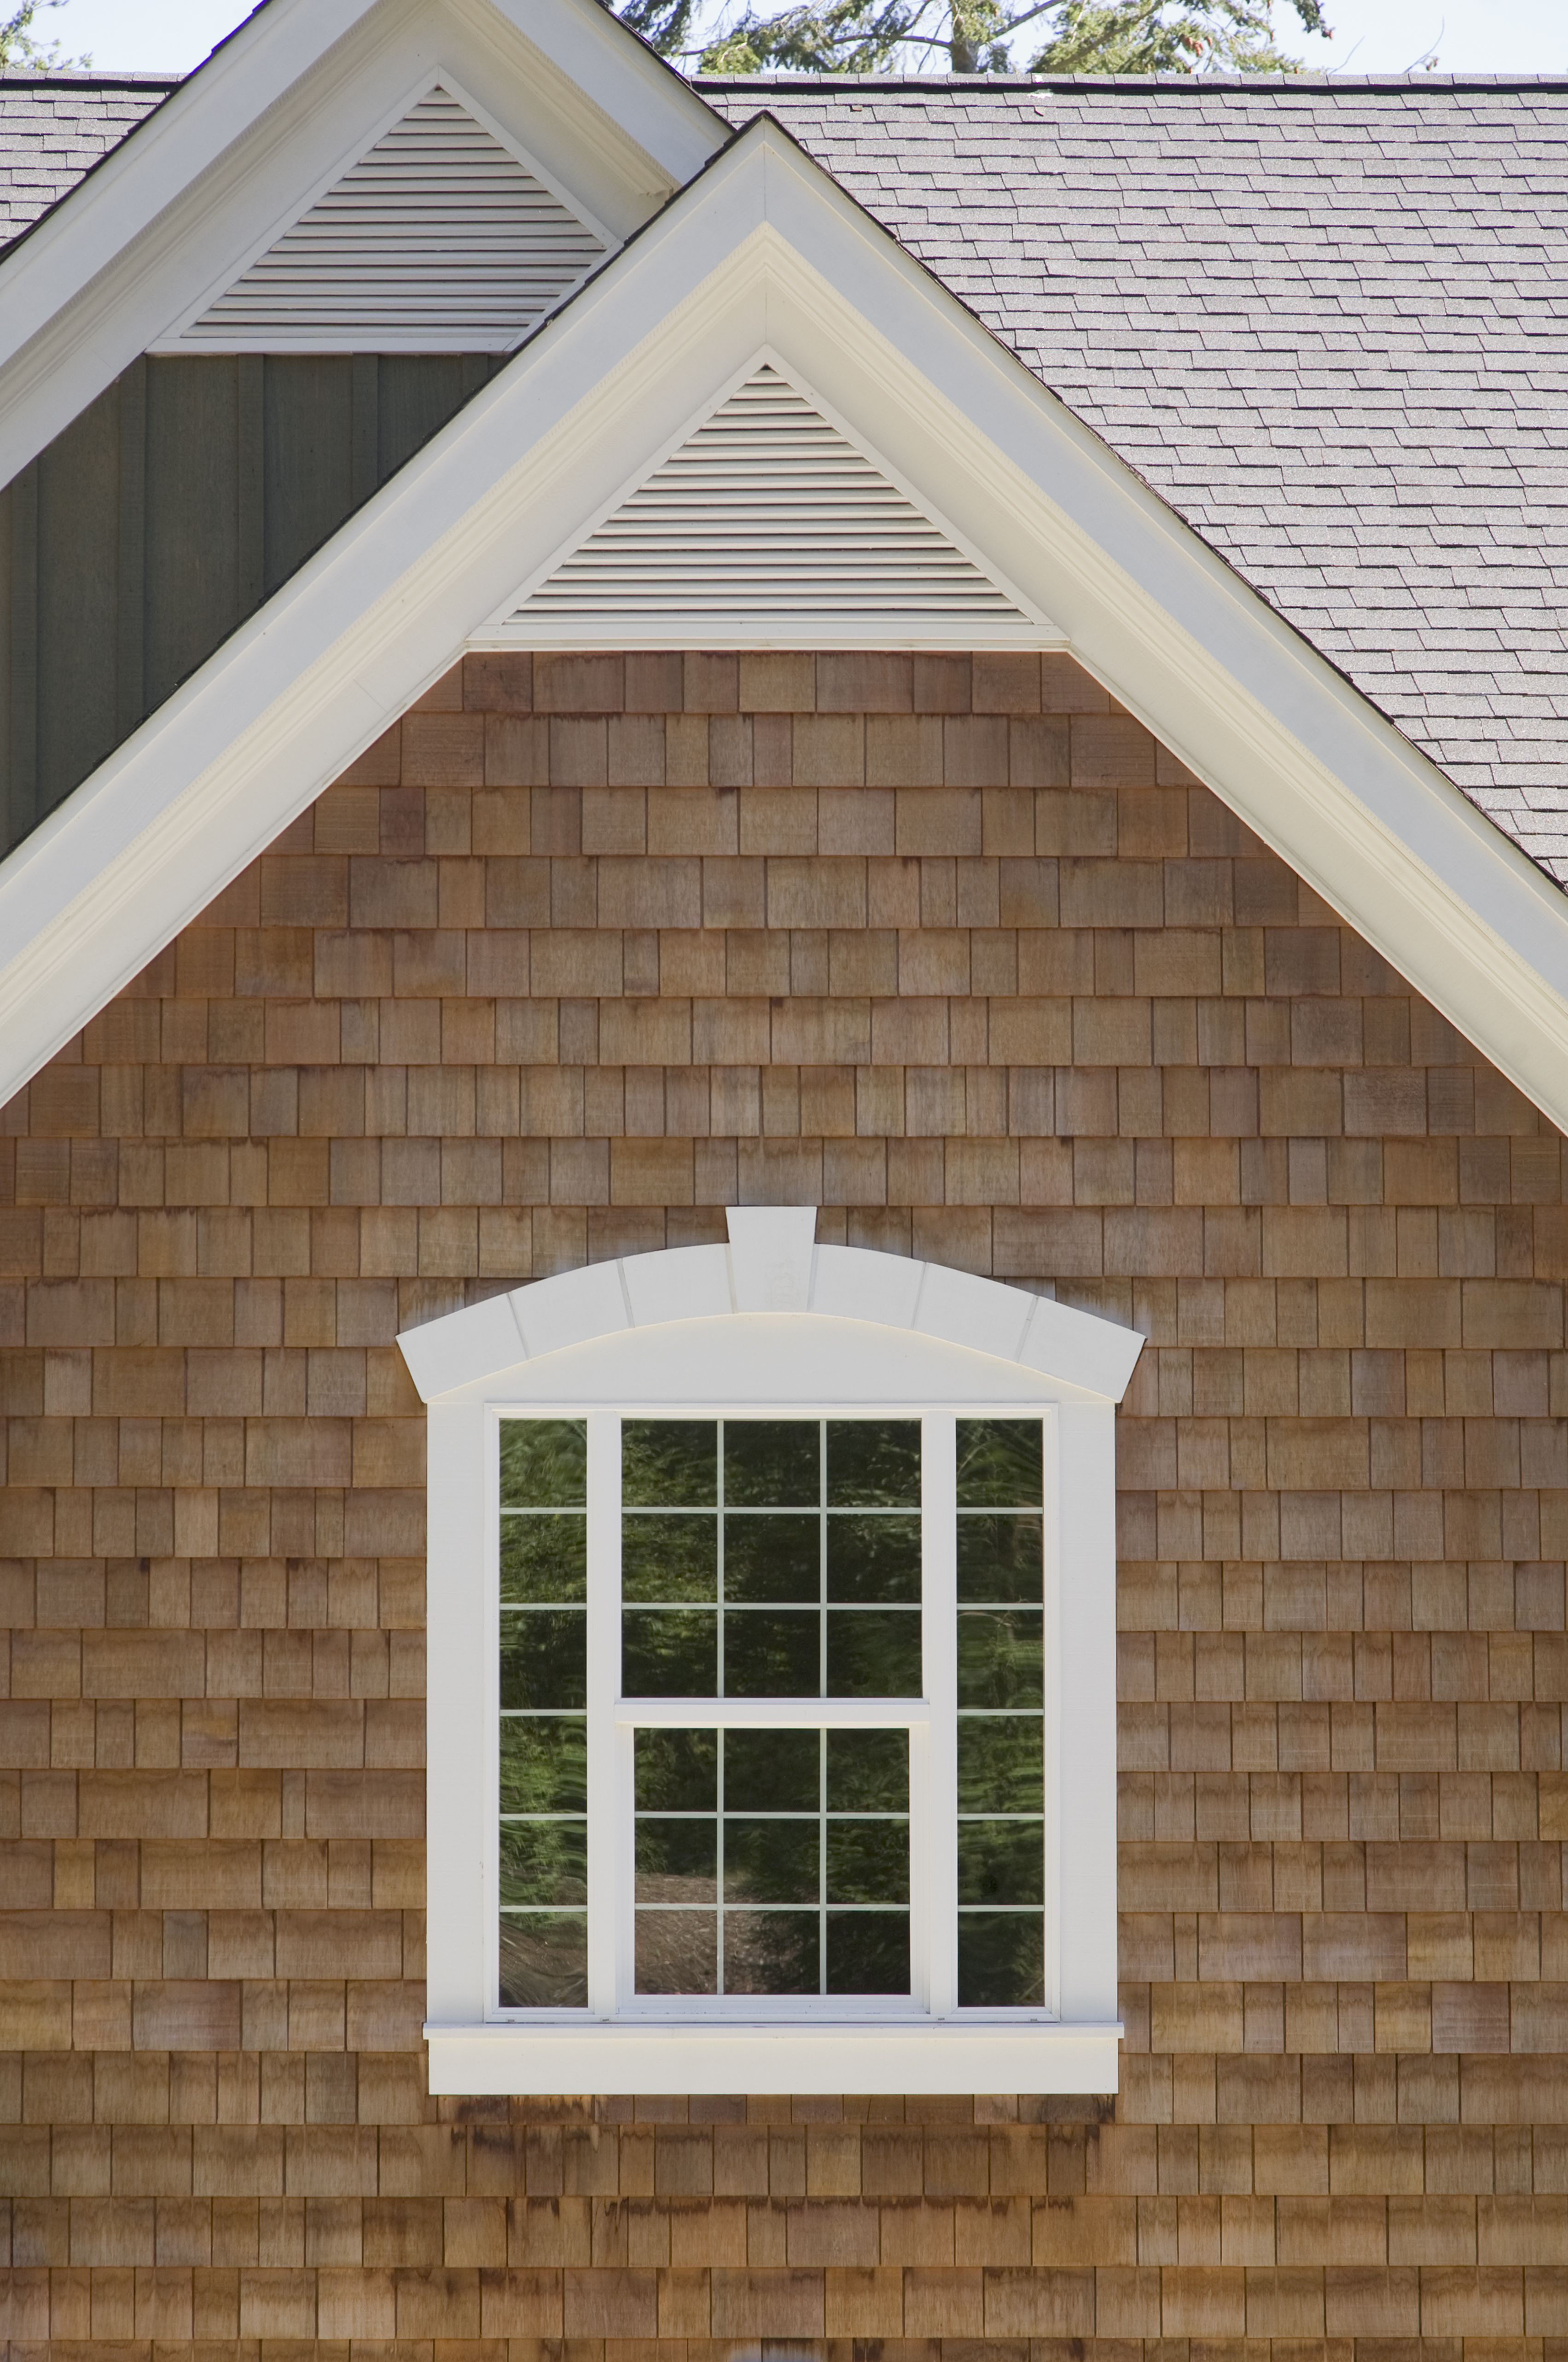 house siding options from plywood to vinyl - Home Exterior Siding